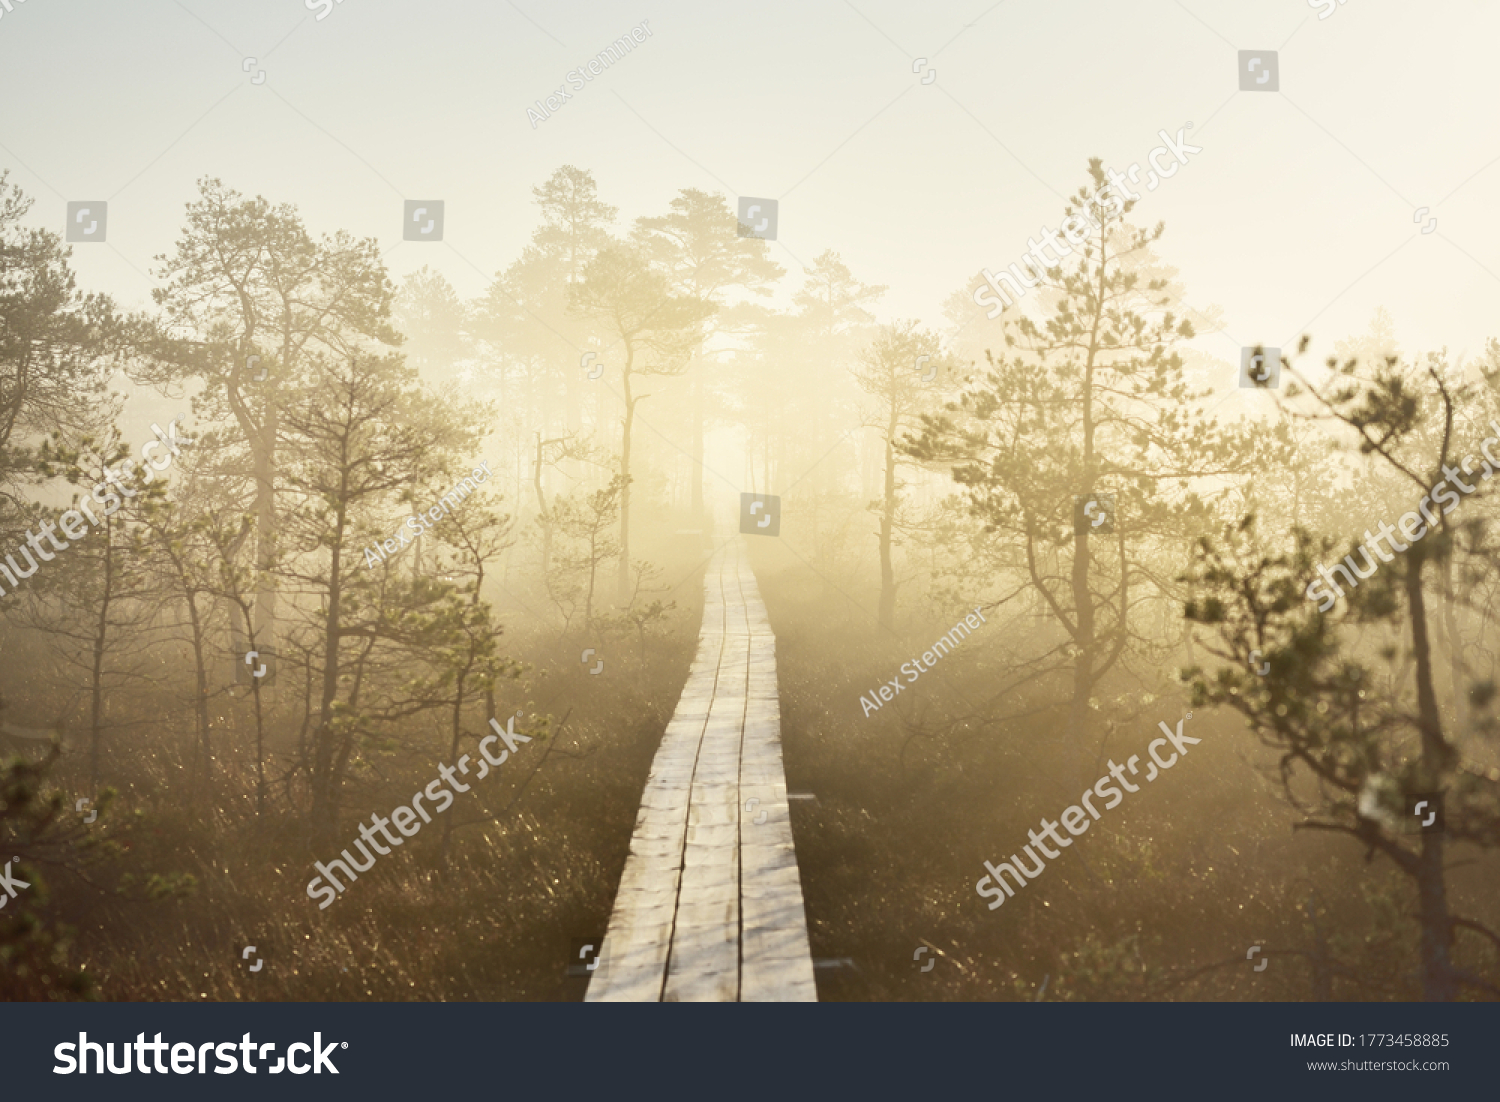 A wooden pathway trough the coniferous forest in a thick mysterious fog at sunrise. Cenas tirelis, Latvia. Sunlight through the old tree trunks. Idyllic autumn landscape. Natural tunnel, fairy scene